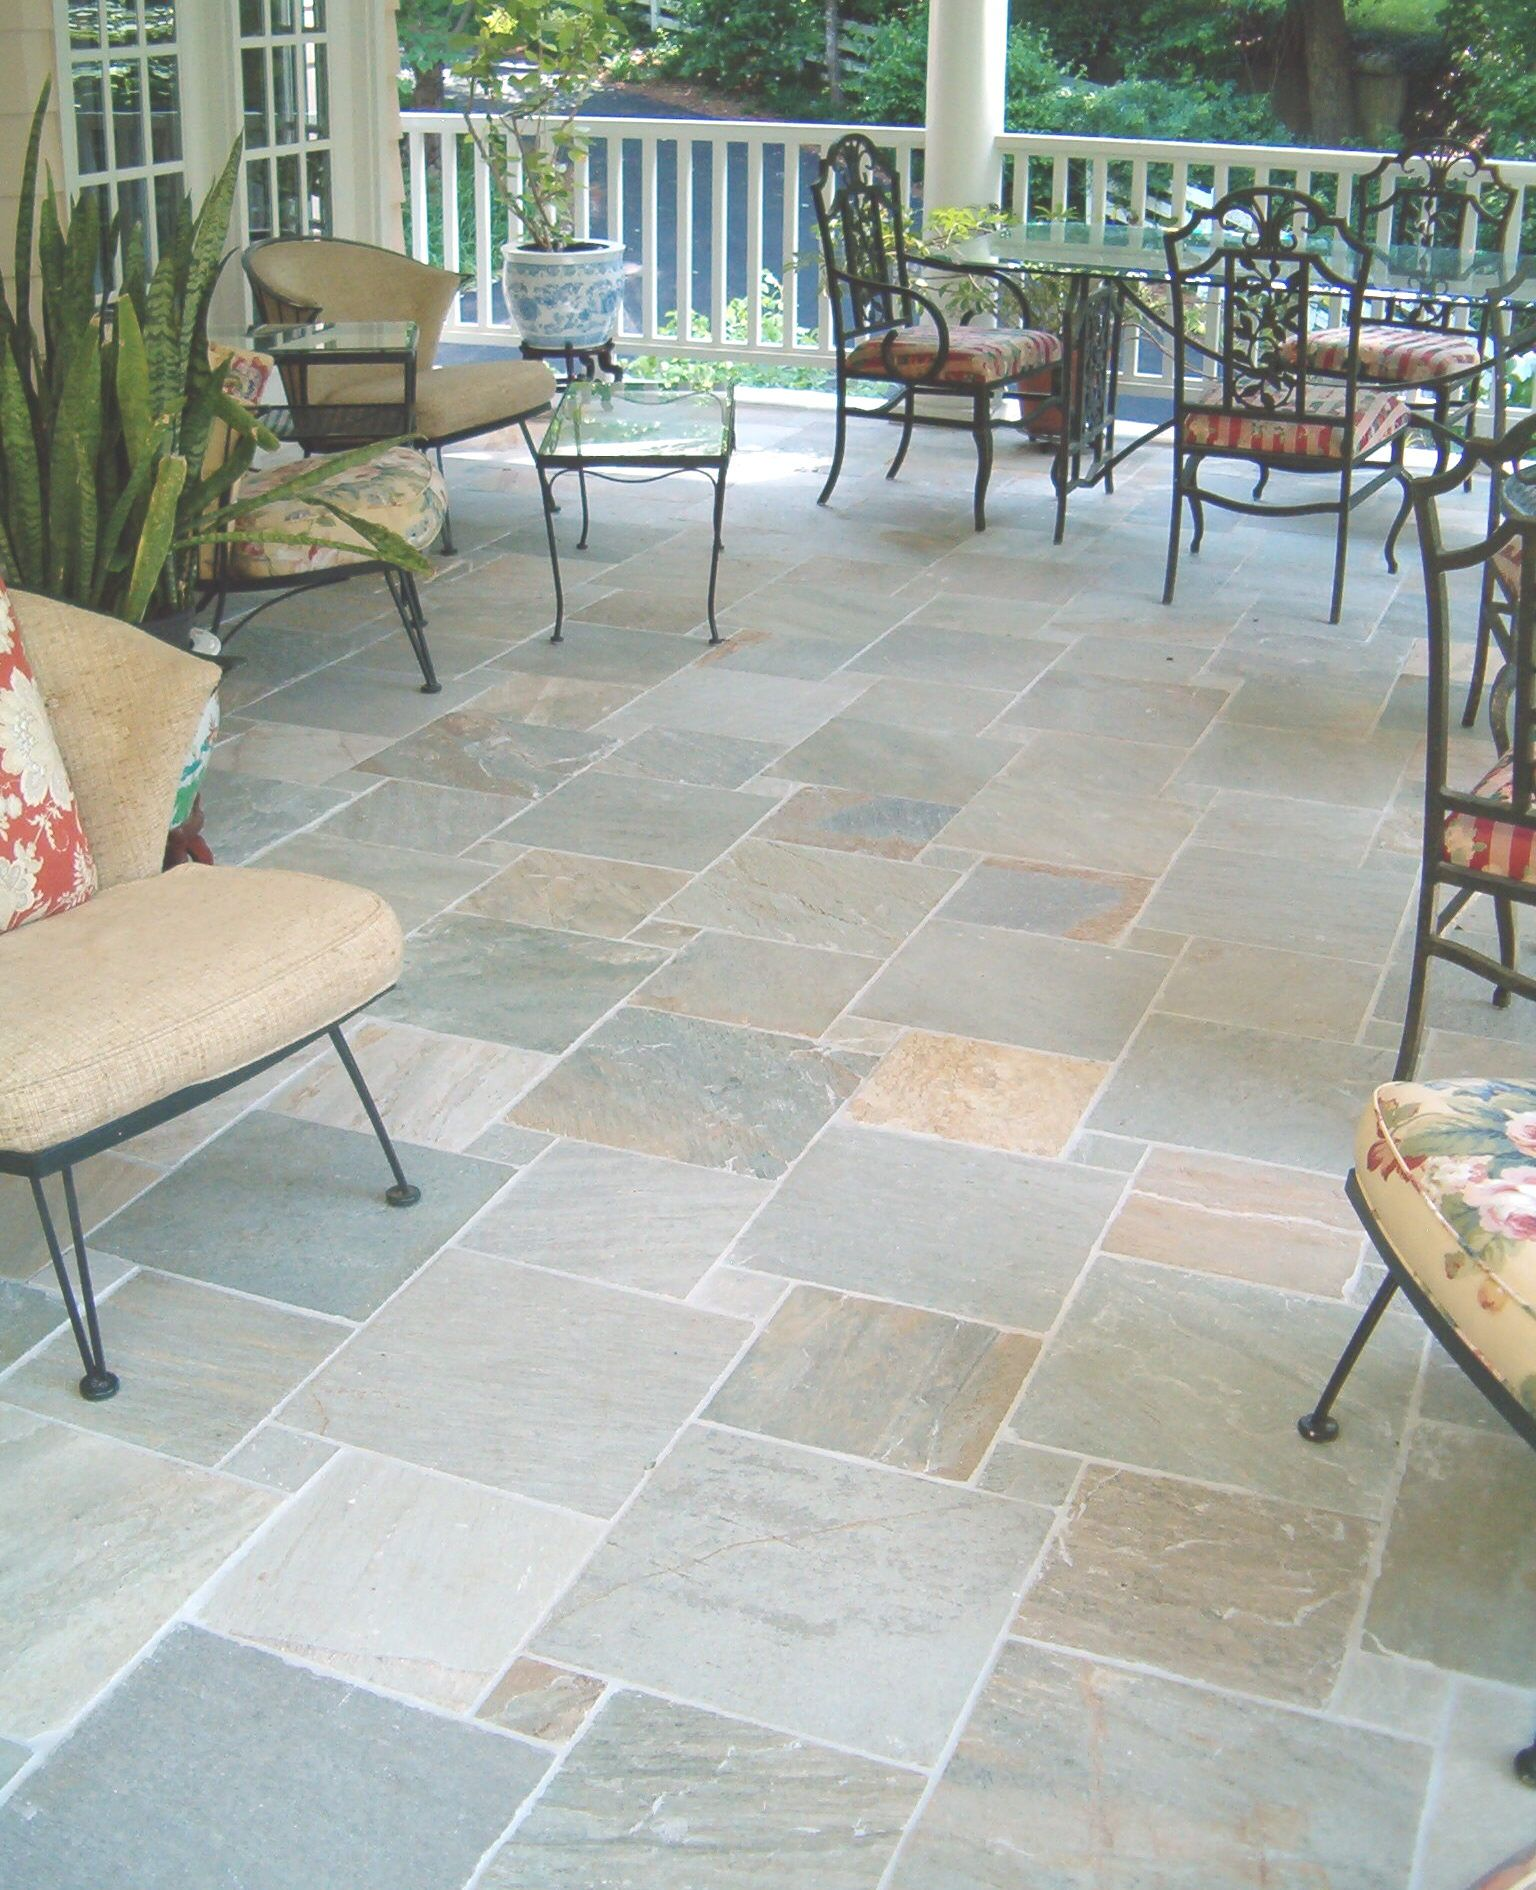 Patio Flooring Tiles It Will Not Make A Difference What Time Is With The Help Of Progressive Models Your Outs